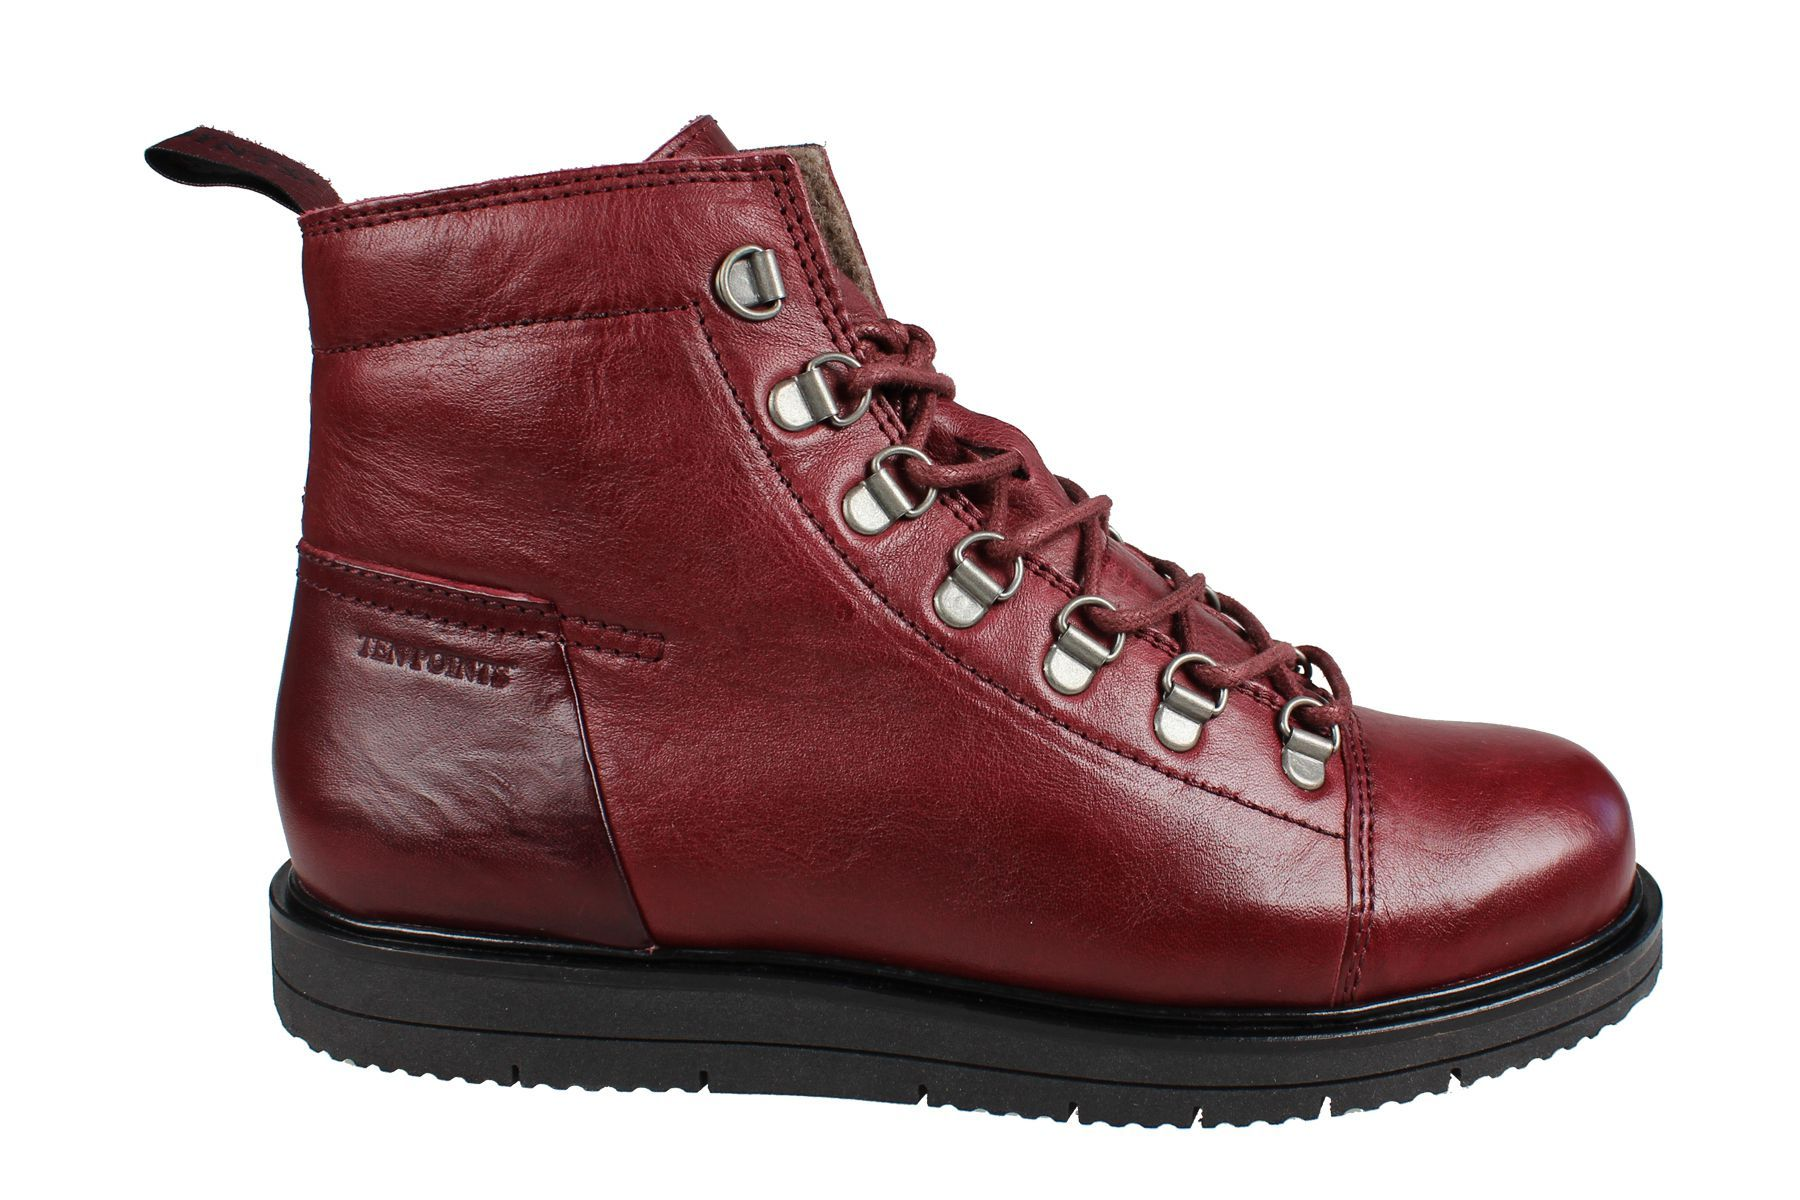 Ten Points Carina Lace-Up in Bordeaux